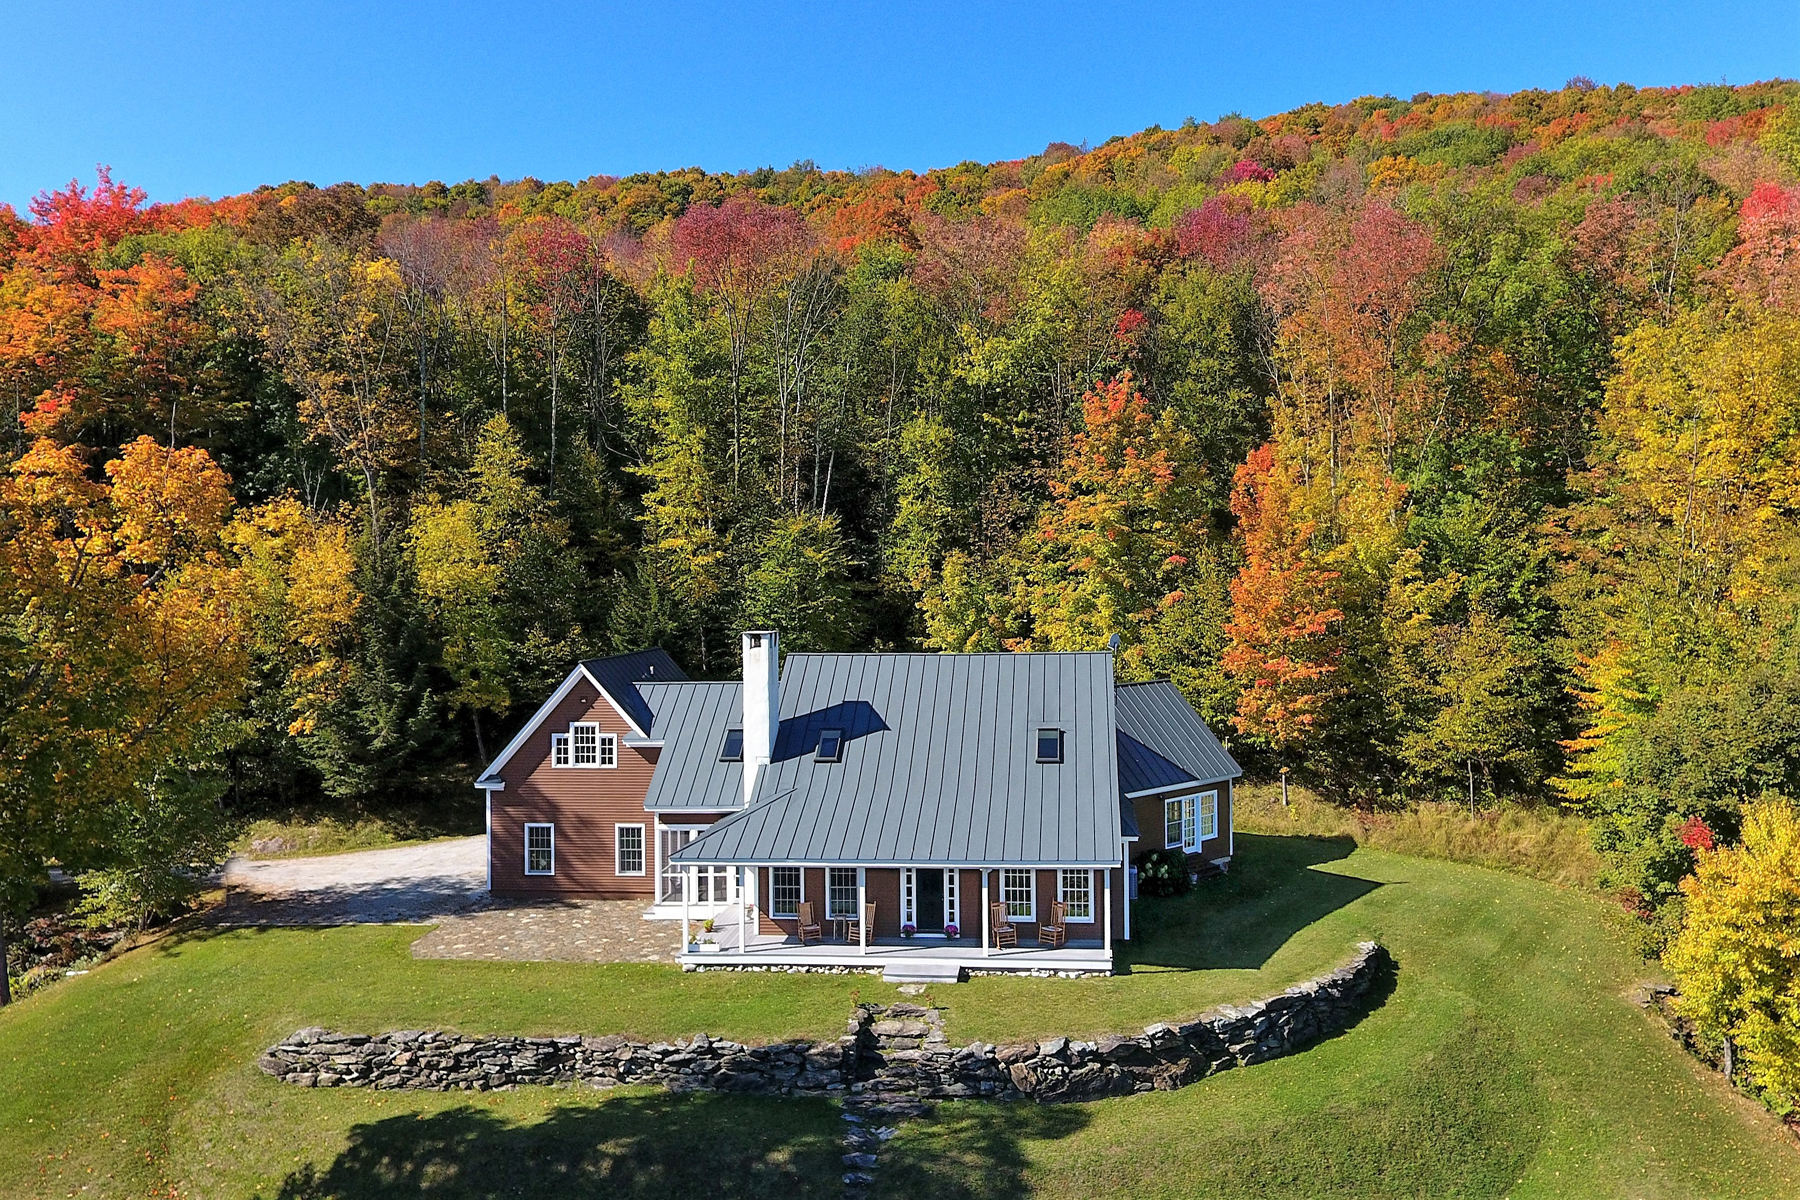 Single Family Homes for Sale at Gracious Home affords Seclusion, Serenity and Arch 394 Hounds Hill Lane Wallingford, Vermont 05773 United States